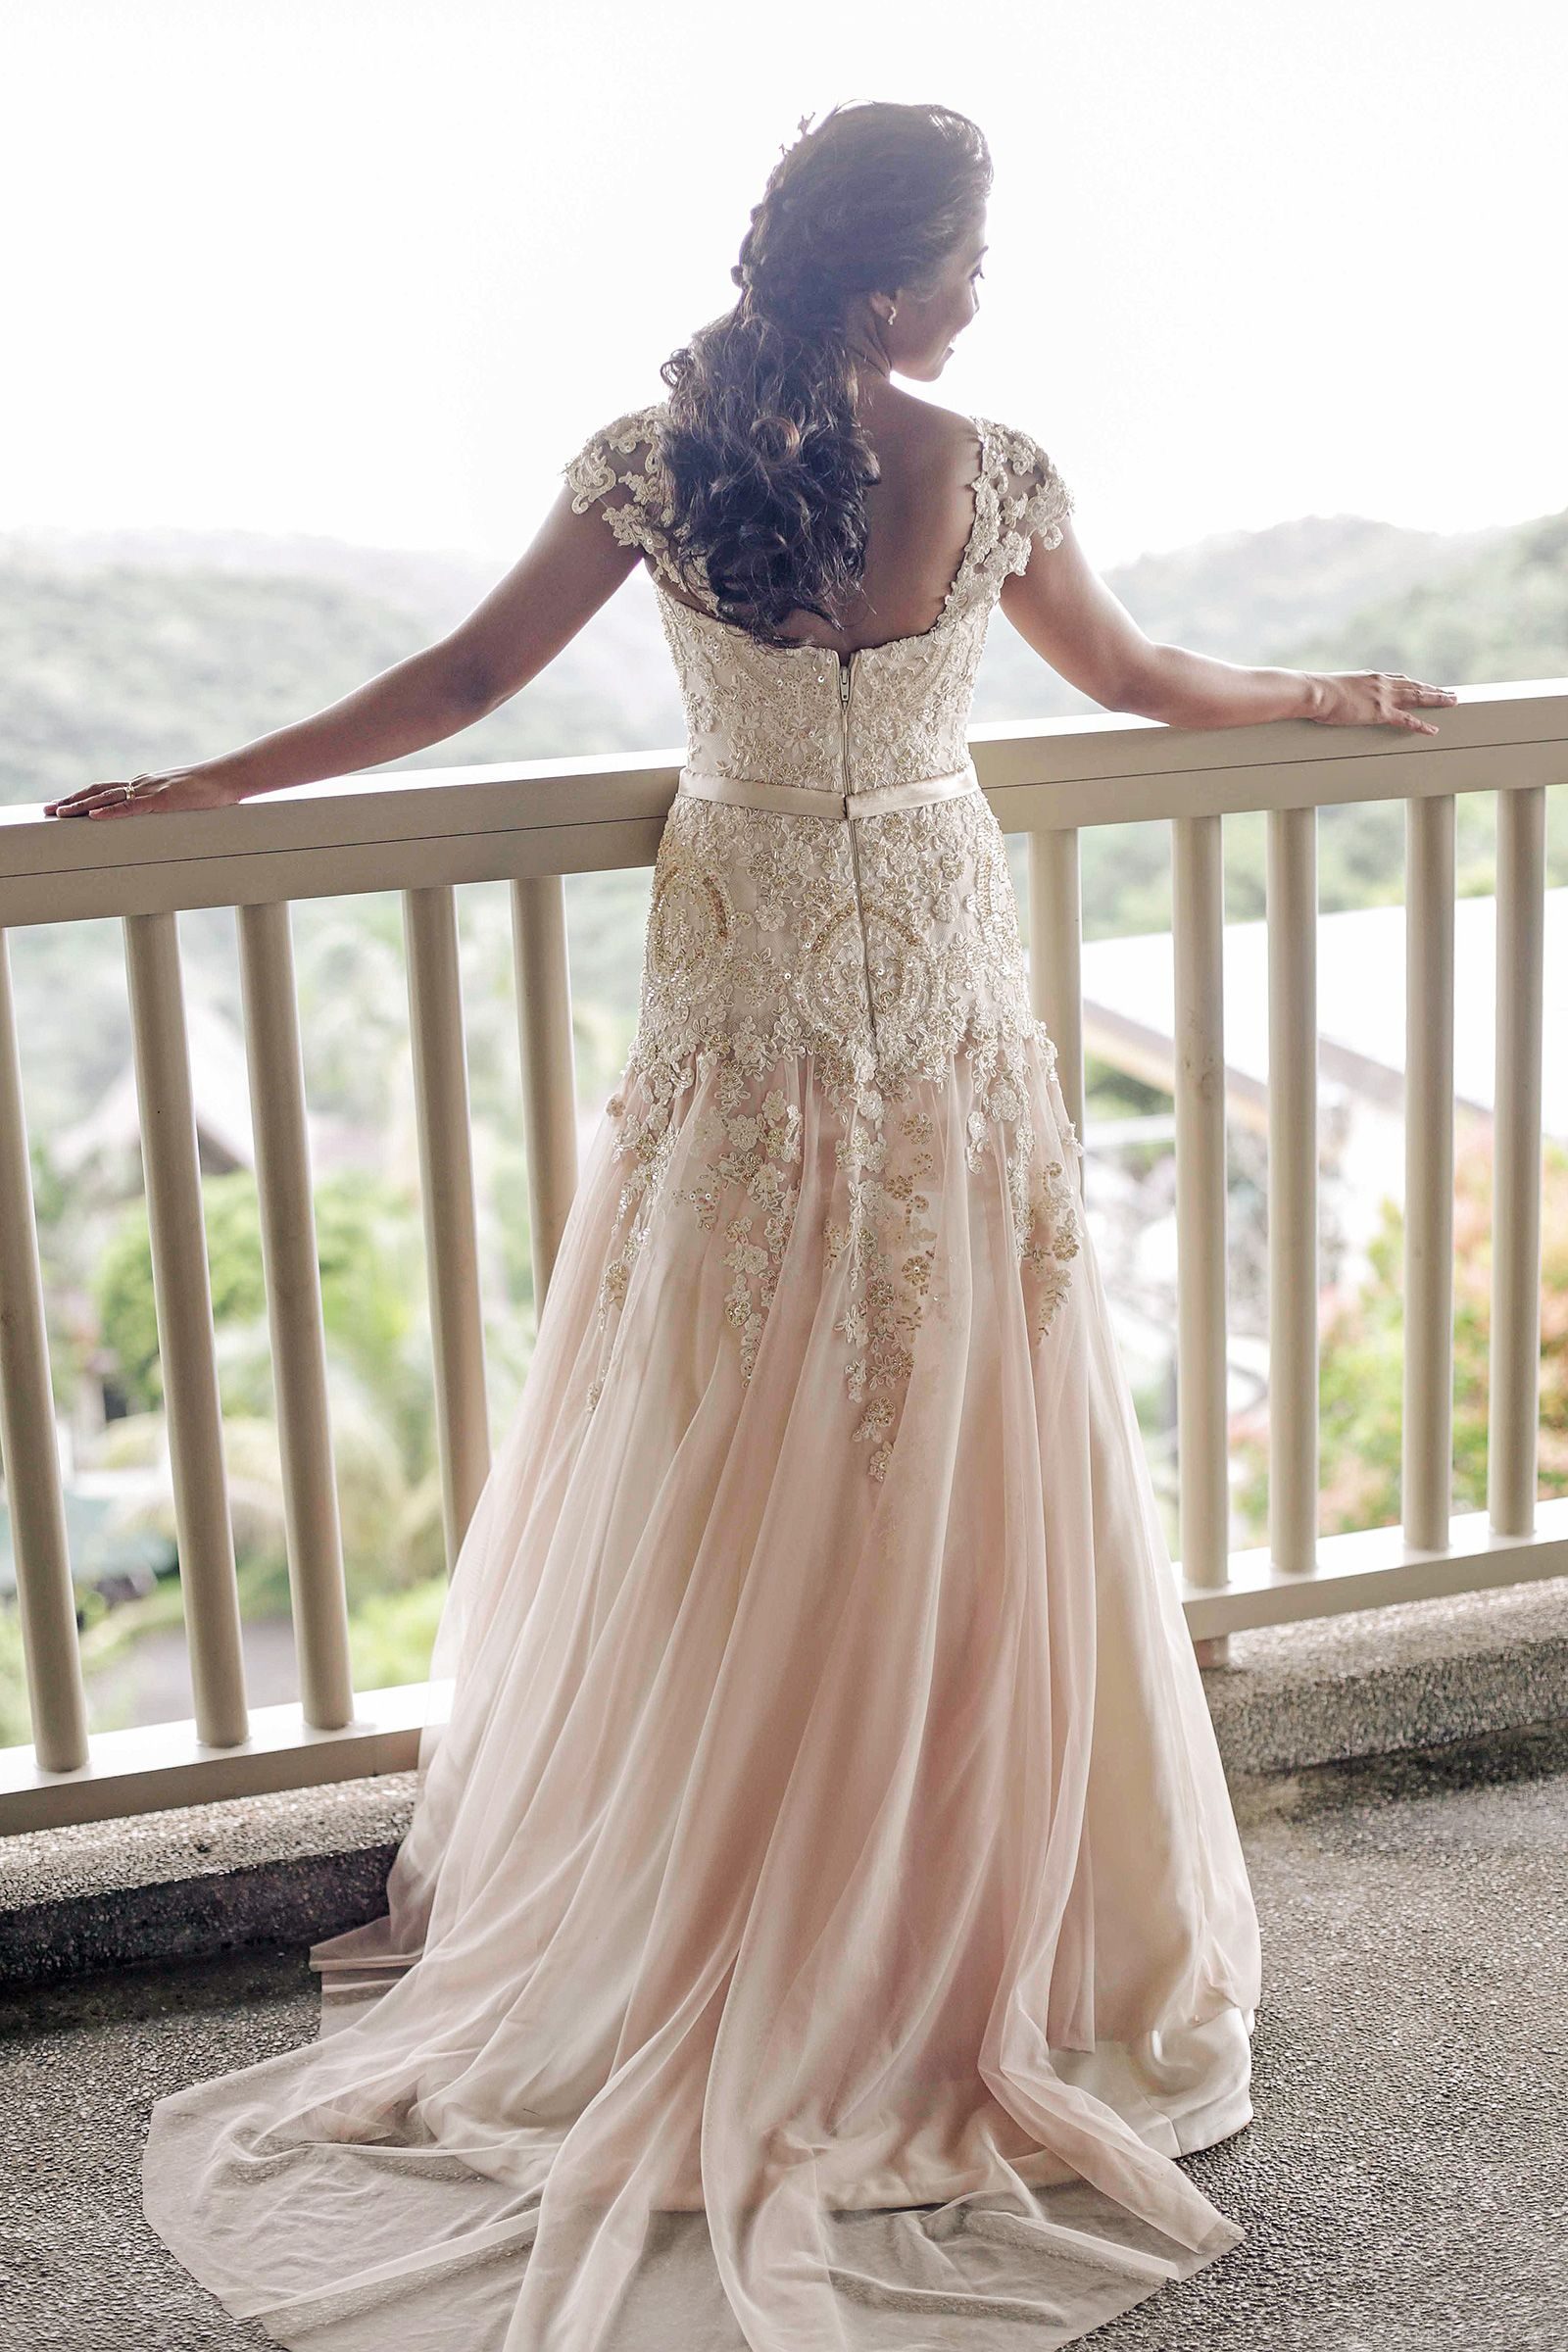 Lace Bridal Gown And Entourage By Camille Co | I DO | Pinterest ...